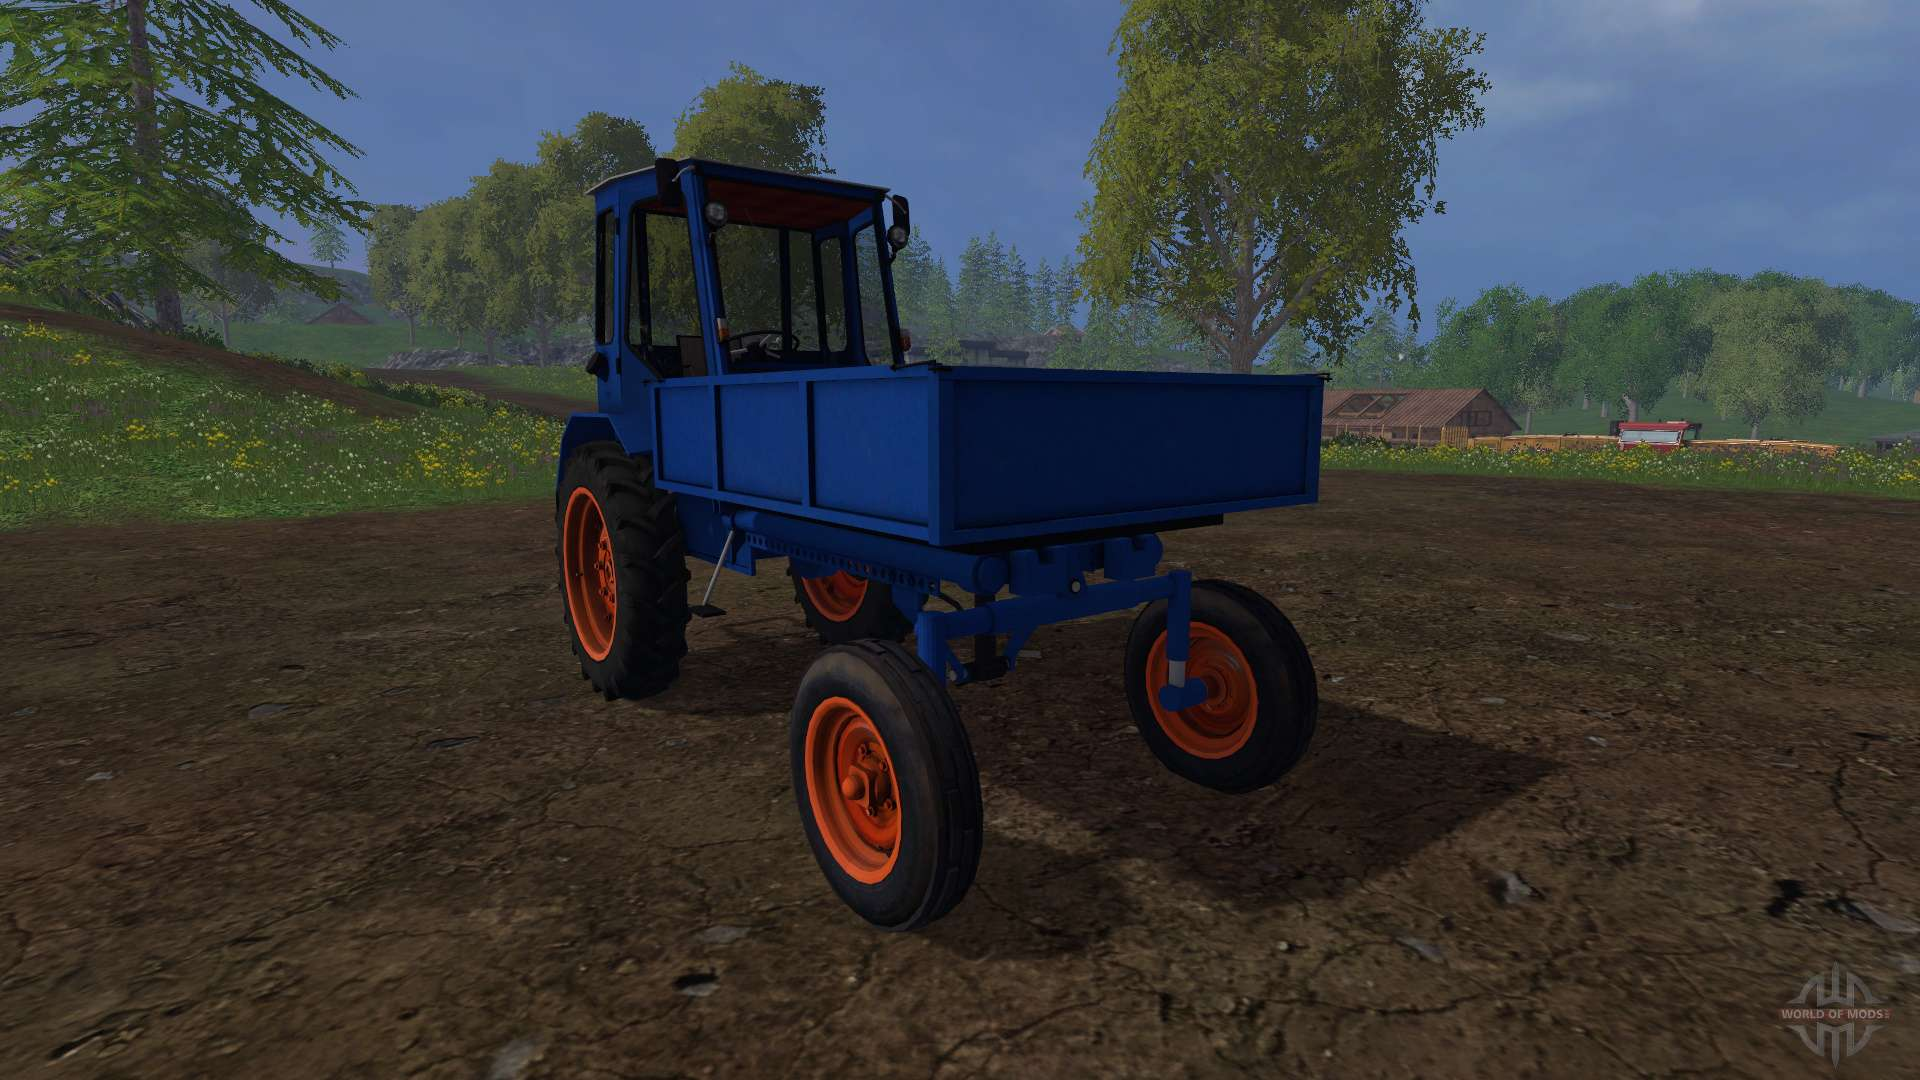 <b>Farming</b> <b>Simulator</b> <b>16</b> for PC (Free Download) | GamesHunters